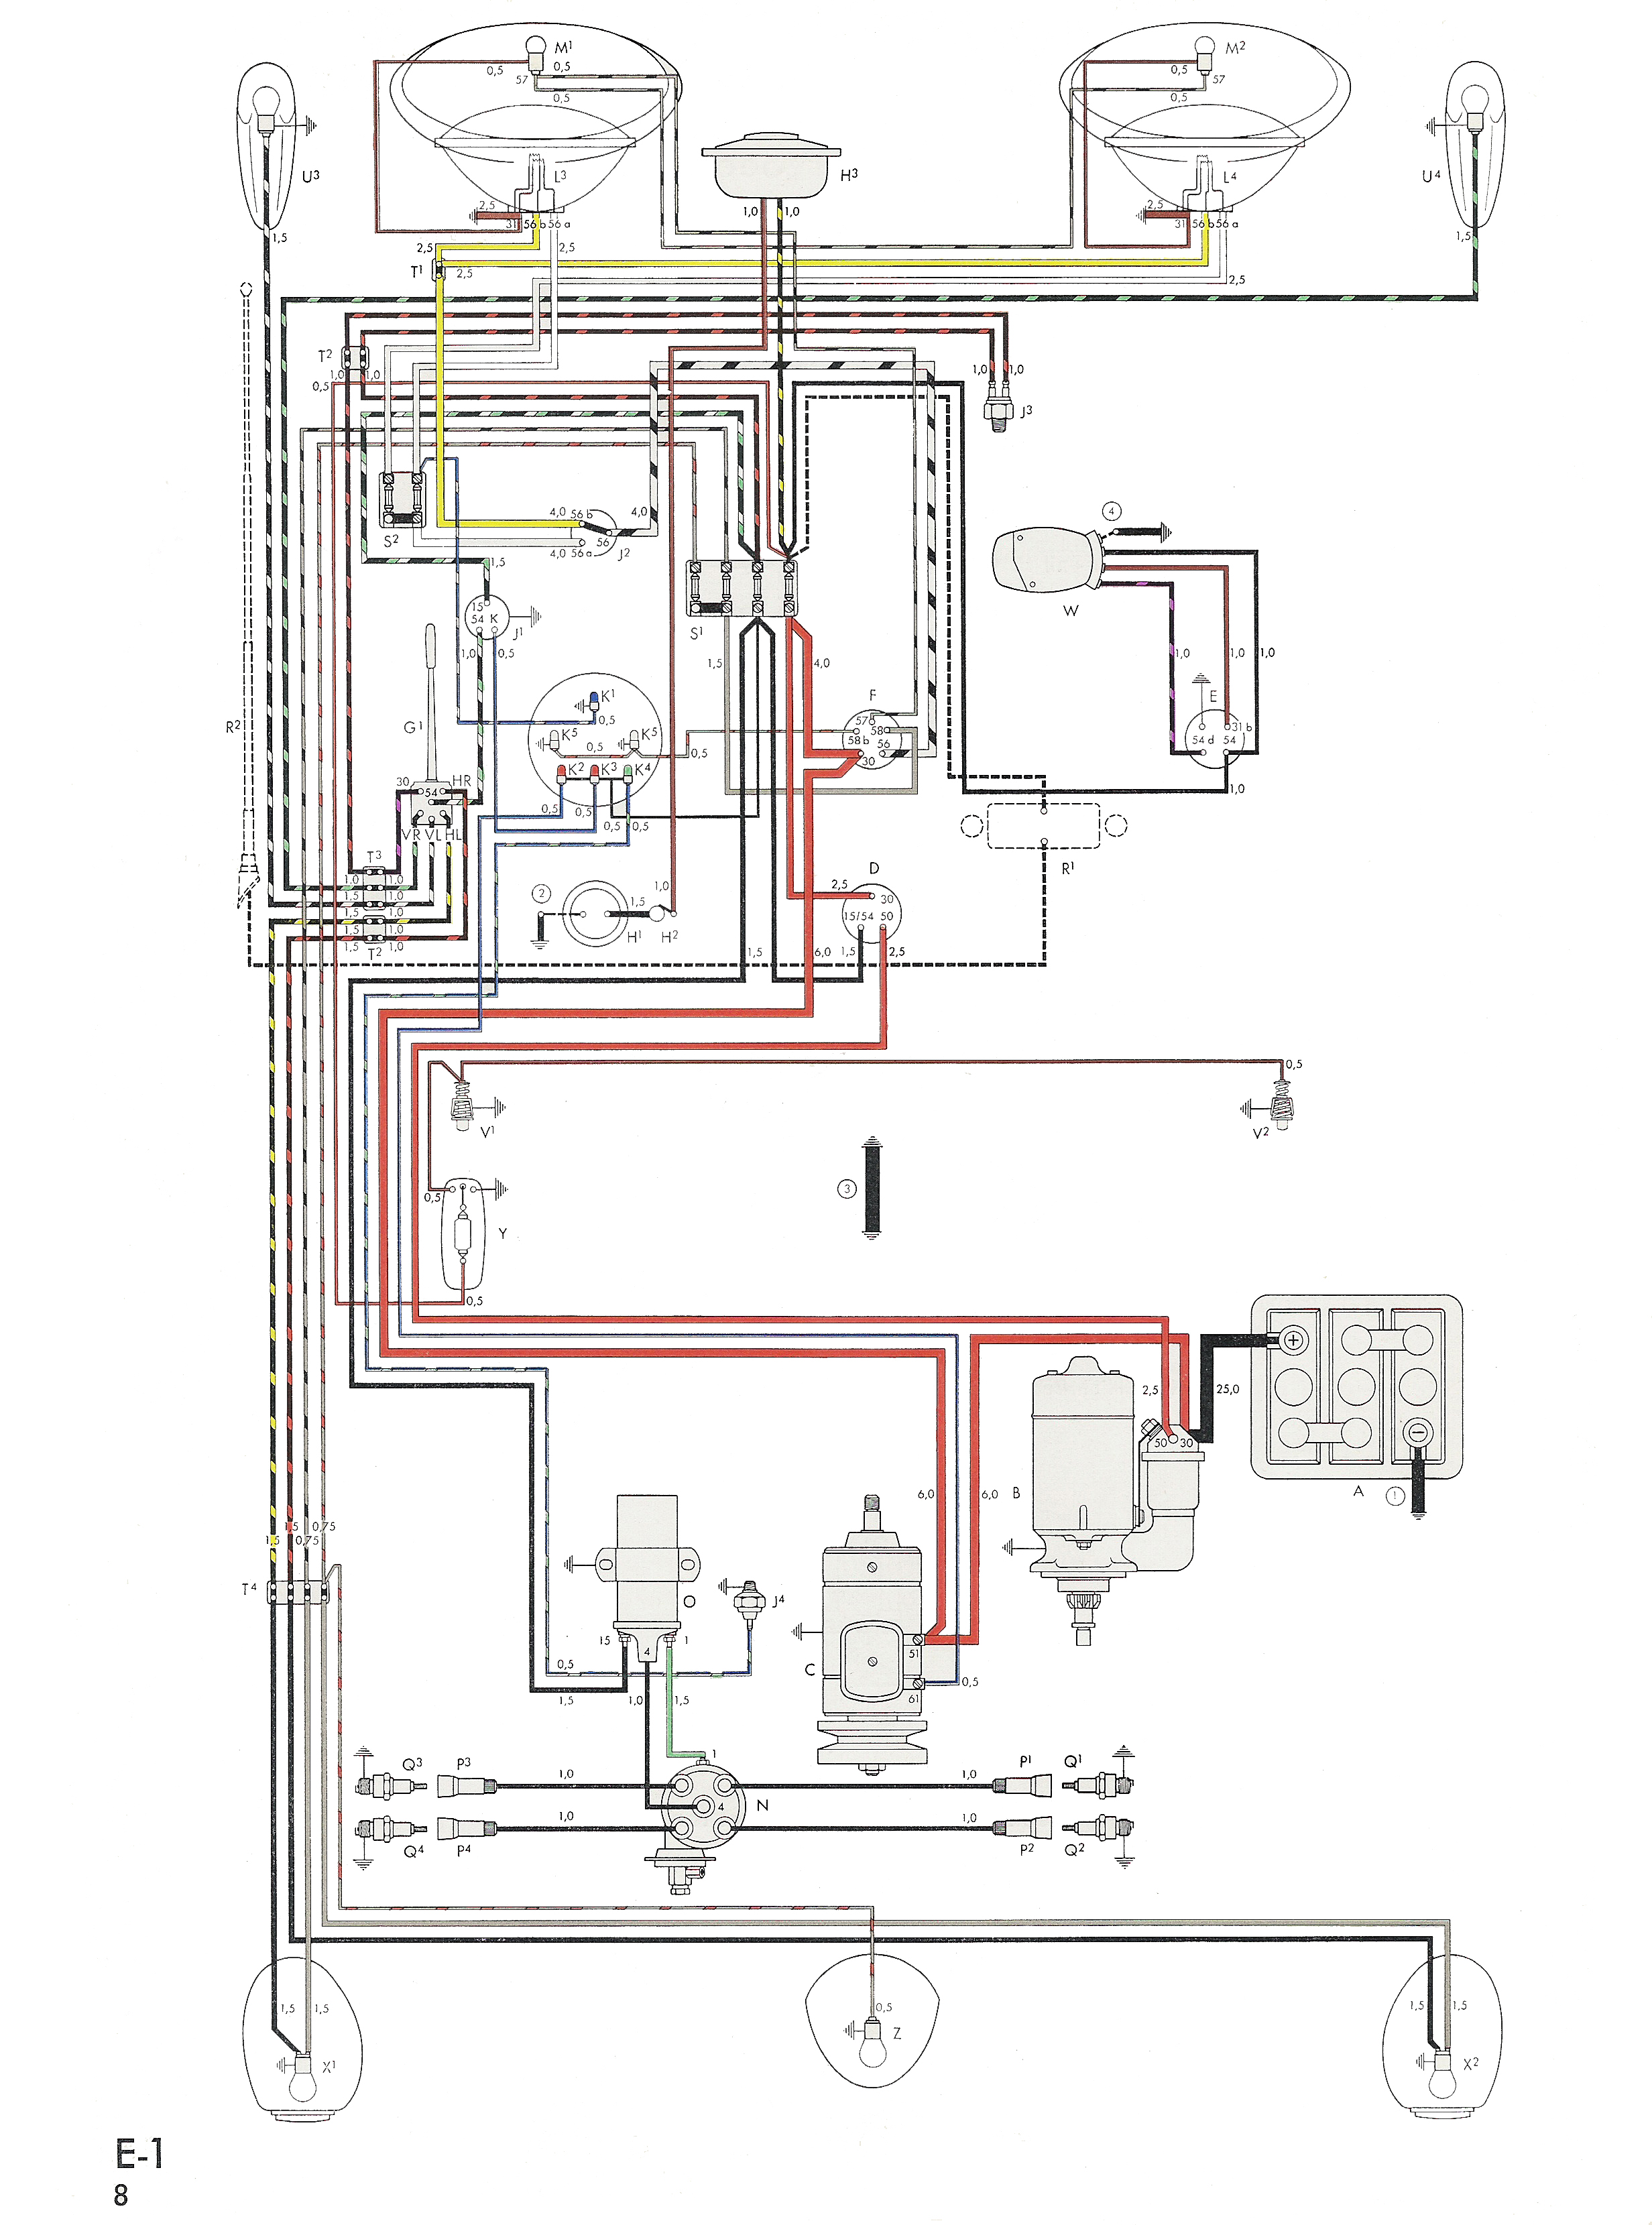 80AFE 2001 Vw Beetle Cooling Fan Wiring Diagram | Wiring ... on cooling fan starter, cooling fan clutch, cooling fan radiator, cooling fan harness diagram, cooling fan relay, cooling fan tools, cooling fan heater, cooling system, 3 position light switch diagram, cooling fan repair, cooling fan connector, engine diagram, cooling fan circuit breaker, cooling fan assembly, 1997 honda civic cooling fan diagram, cooling fan thermostat, cooling fan controls, cooling fan coil, ac motor speed control circuit diagram, cooling tower diagram,